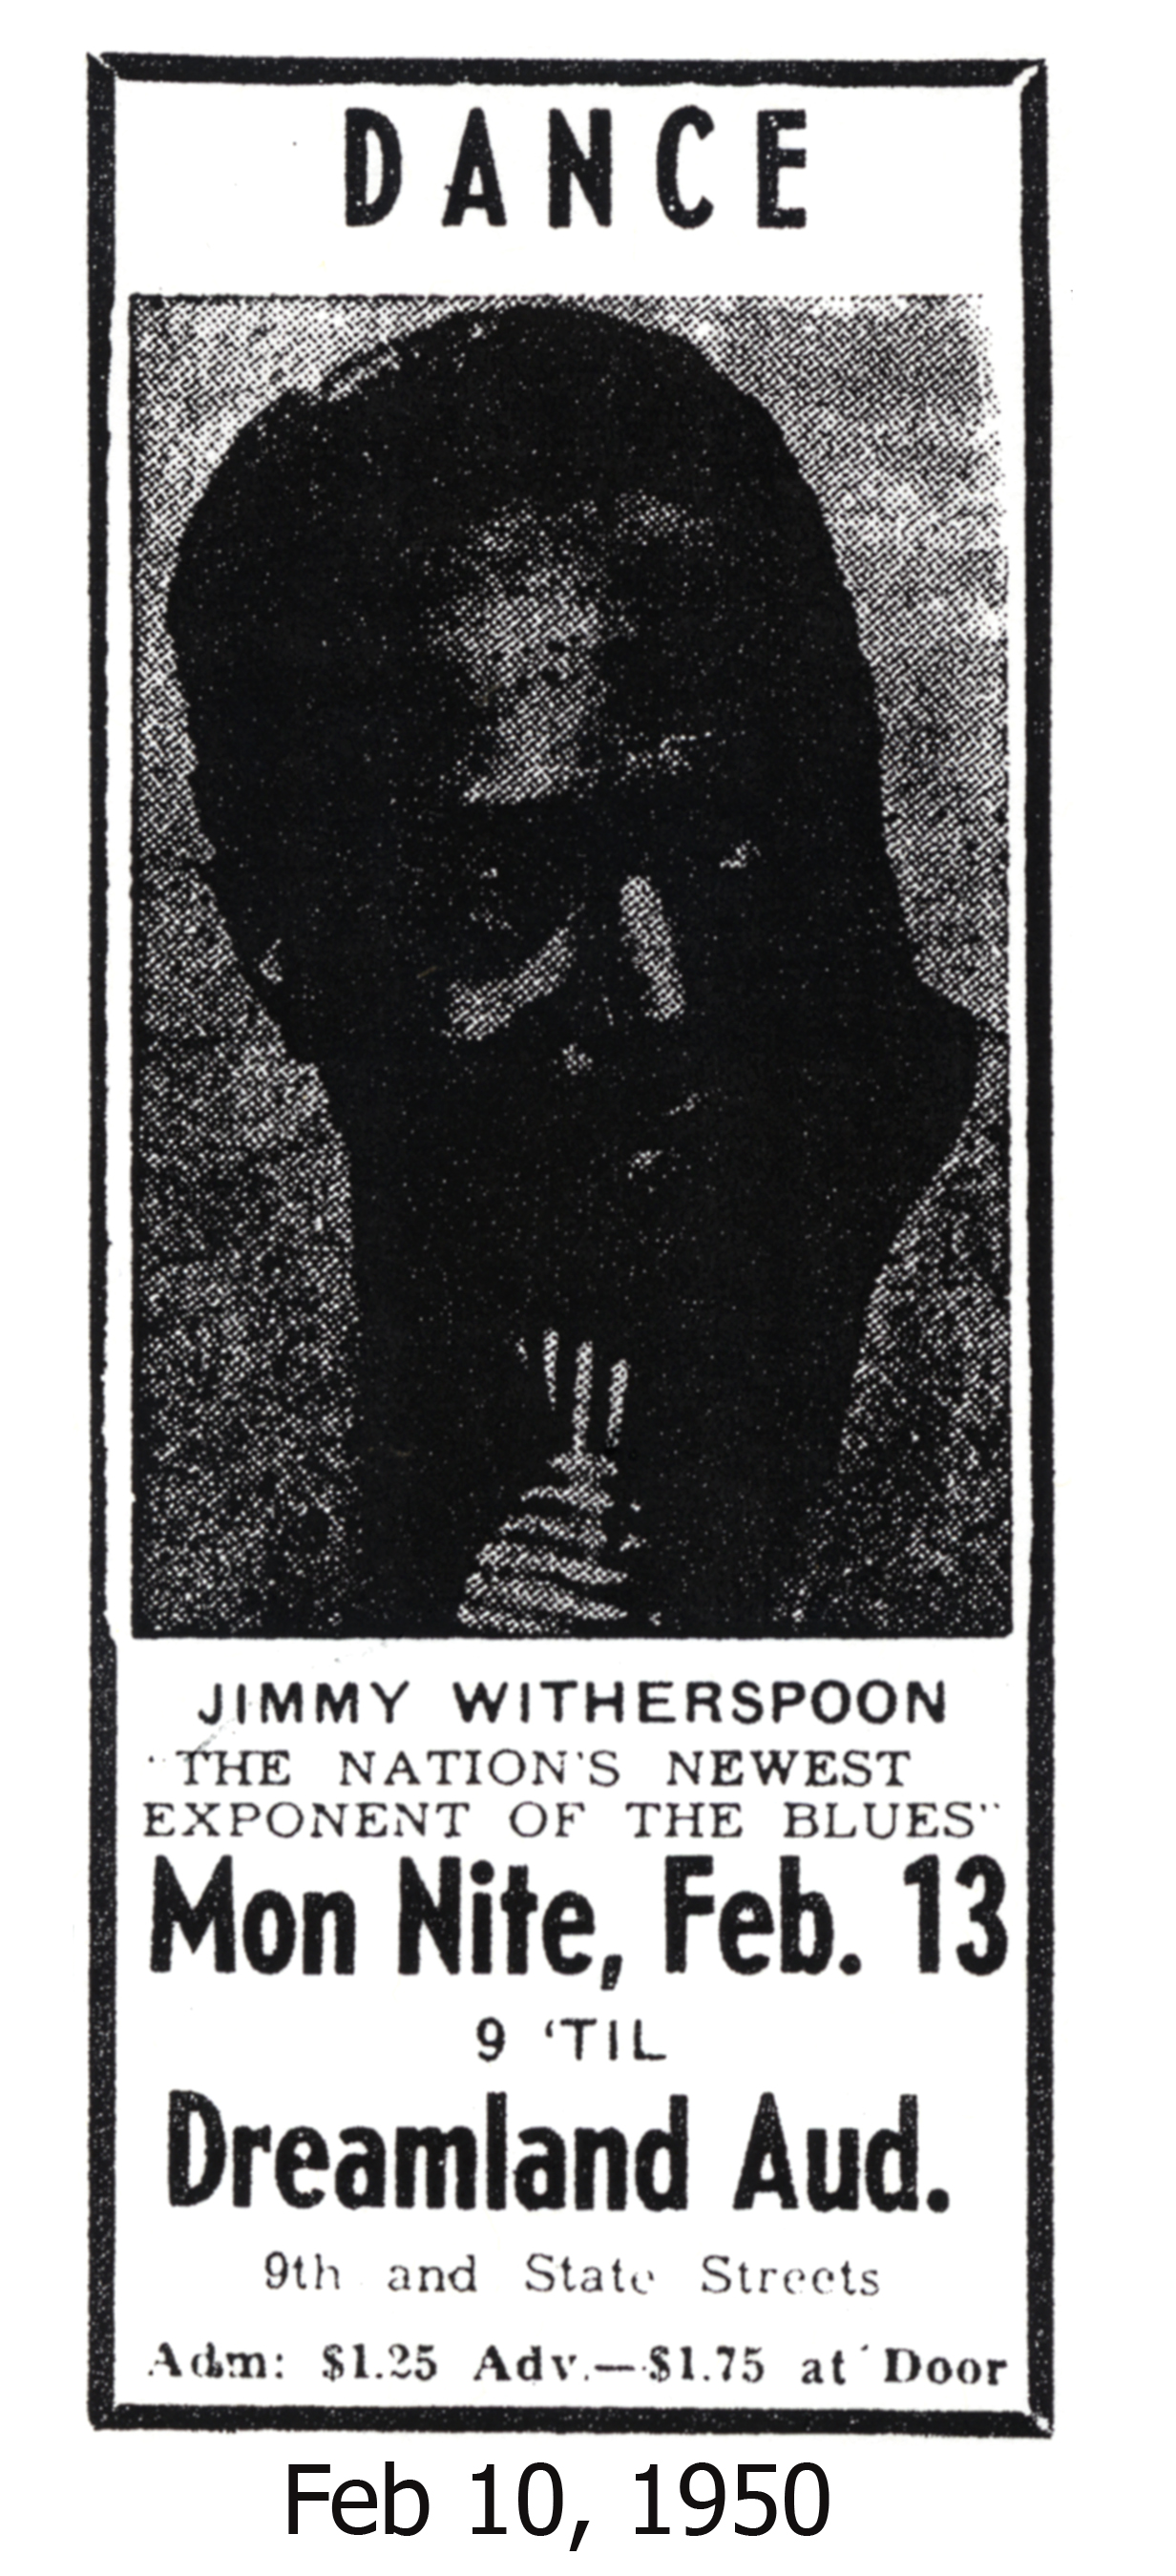 JimmyWitherspoon.jpg